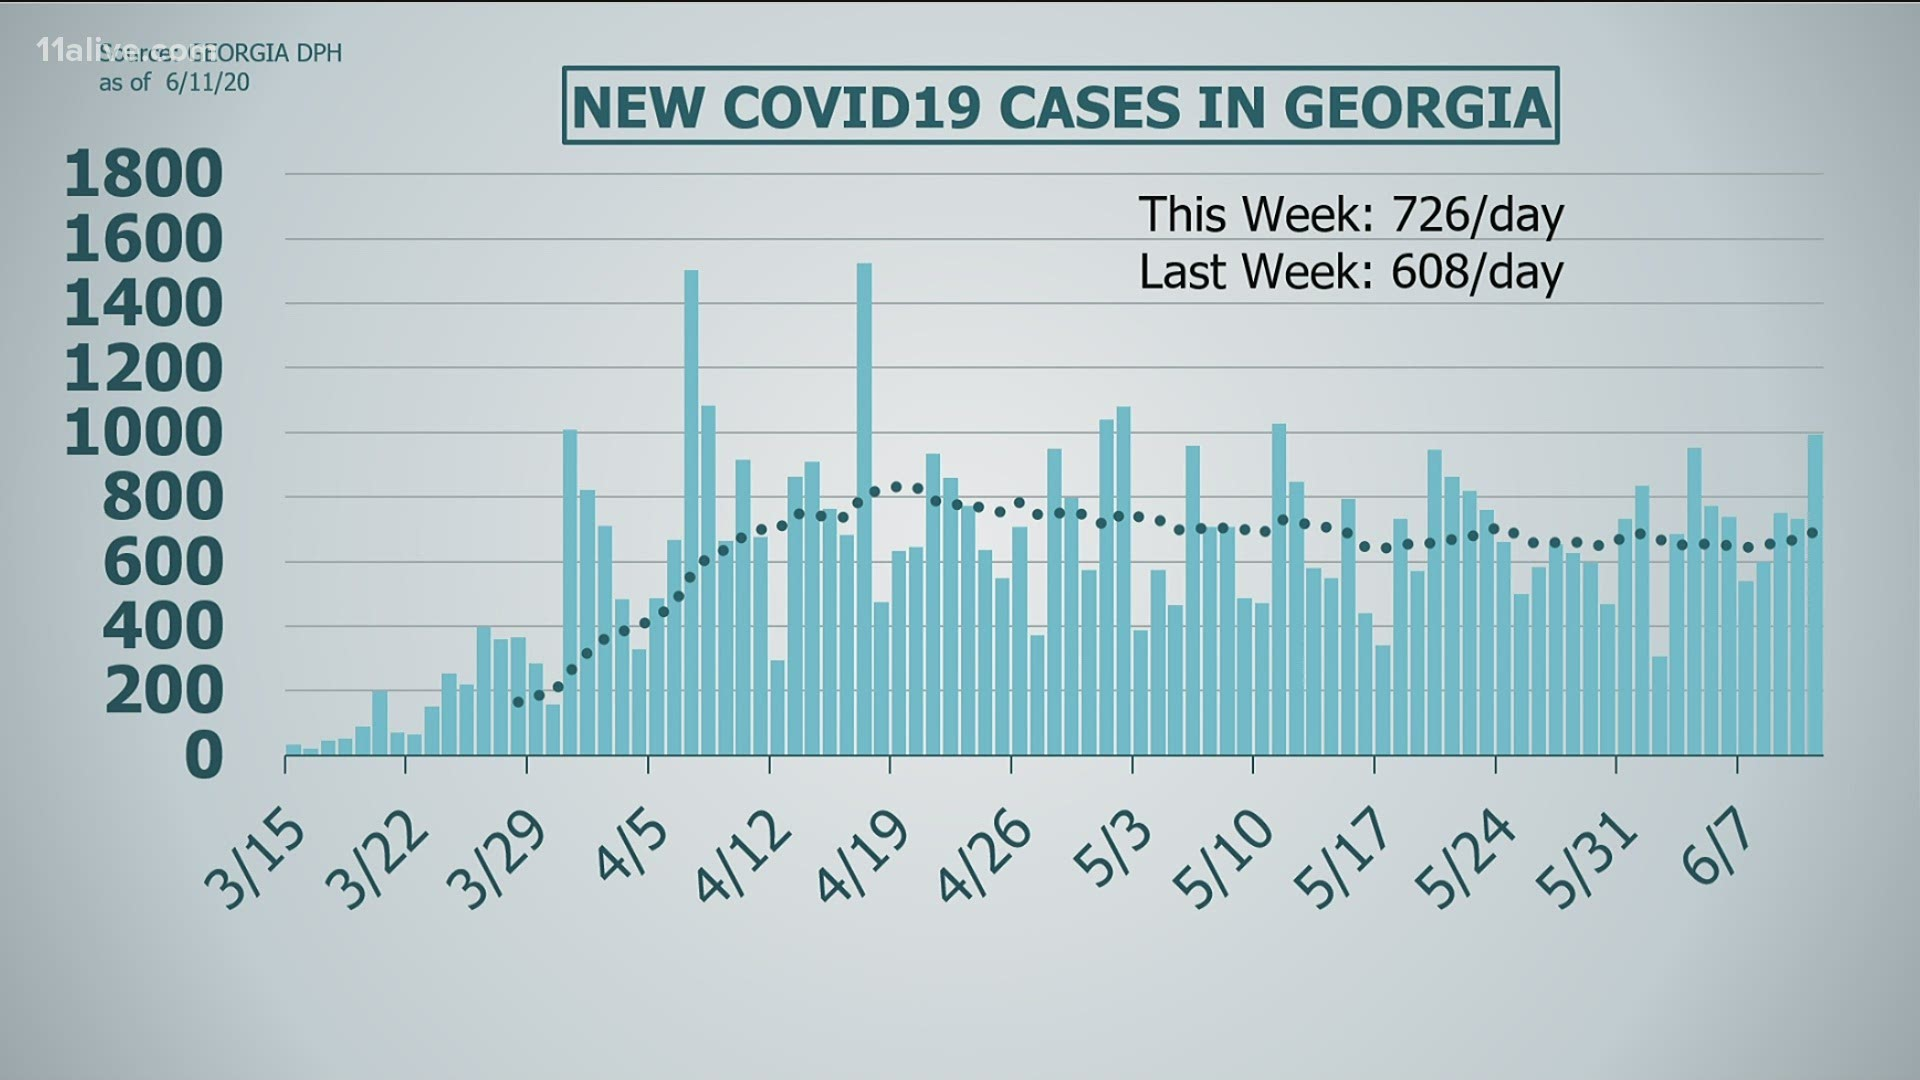 Georgia S Covid 19 Numbers Jump As Social Distancing Rules Lax 11alive Com